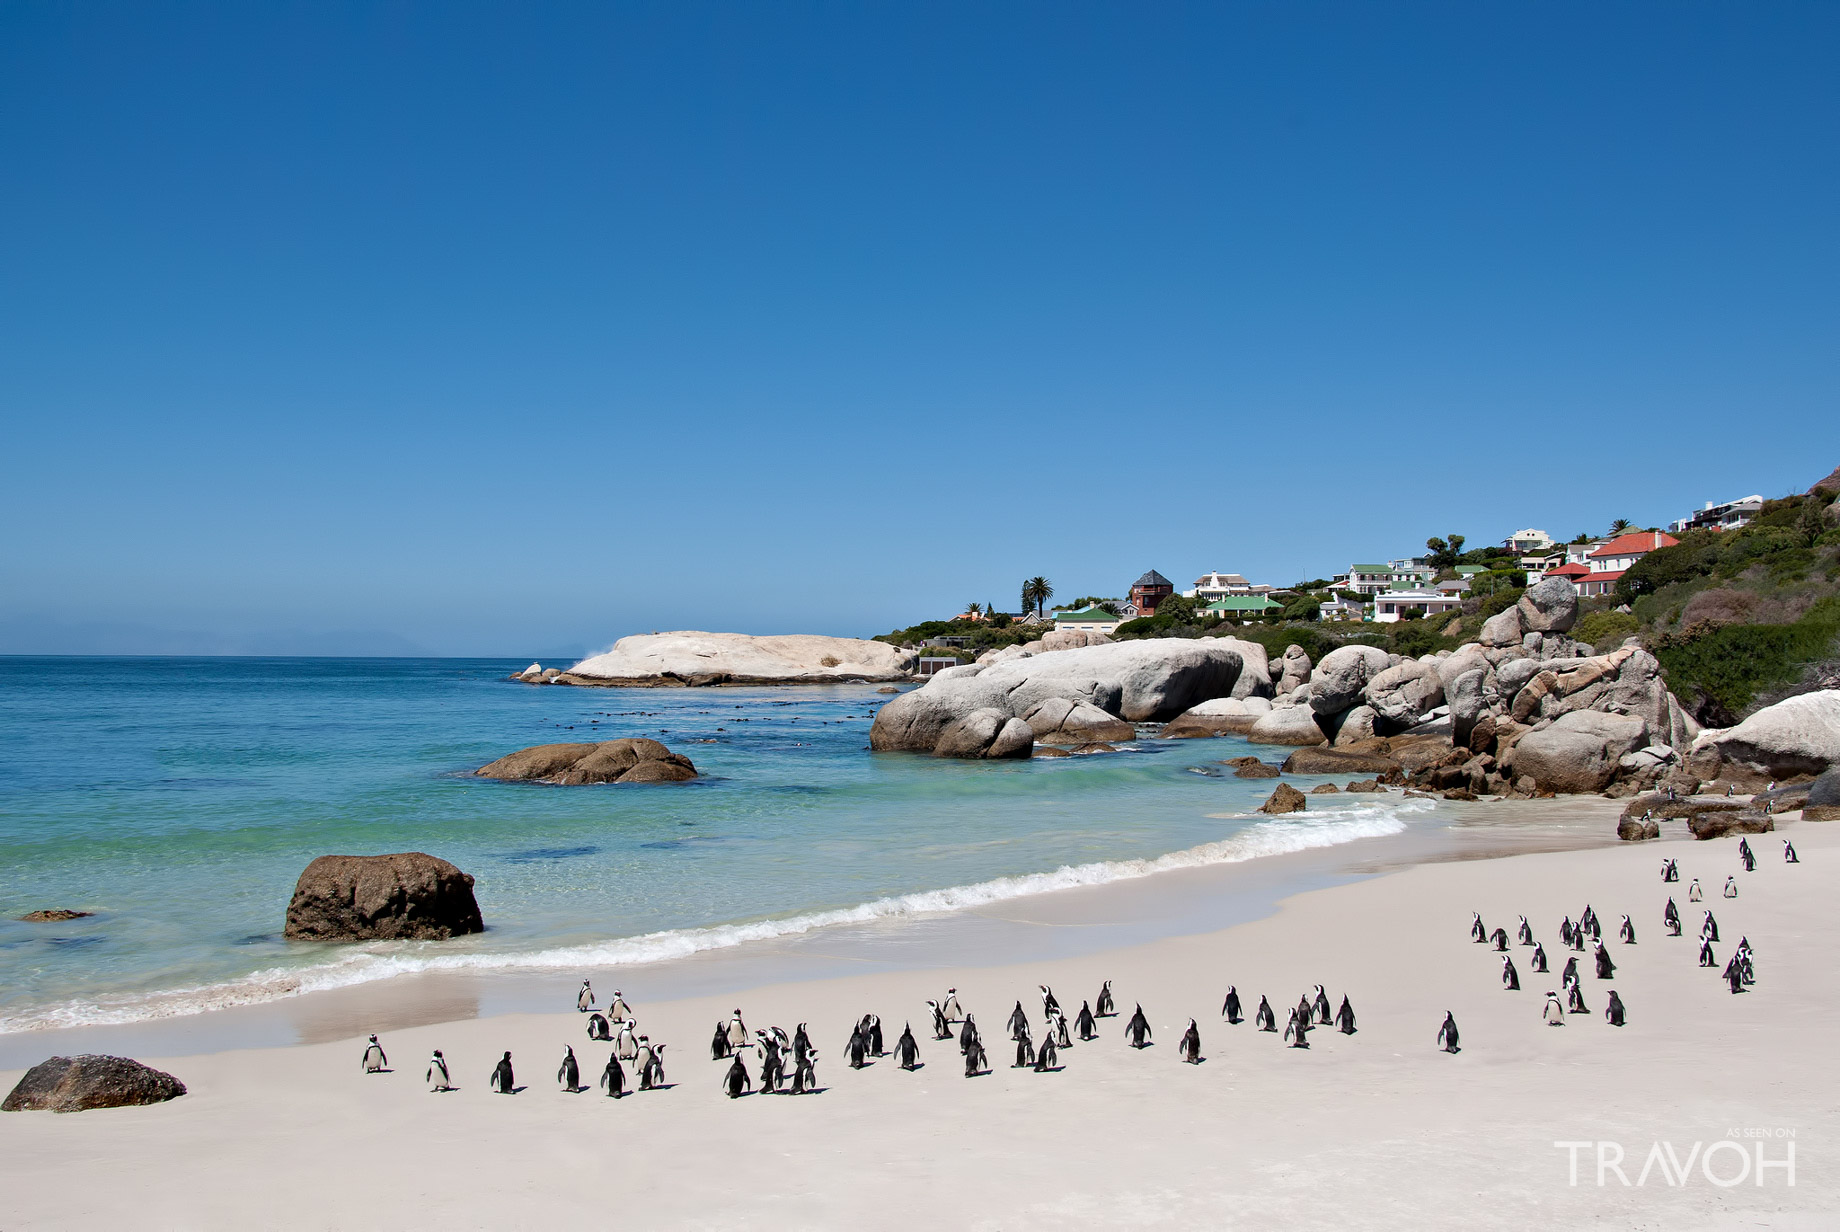 Boulders Beach – Exploring 10 of the Top Beaches in Cape Town, South Africa